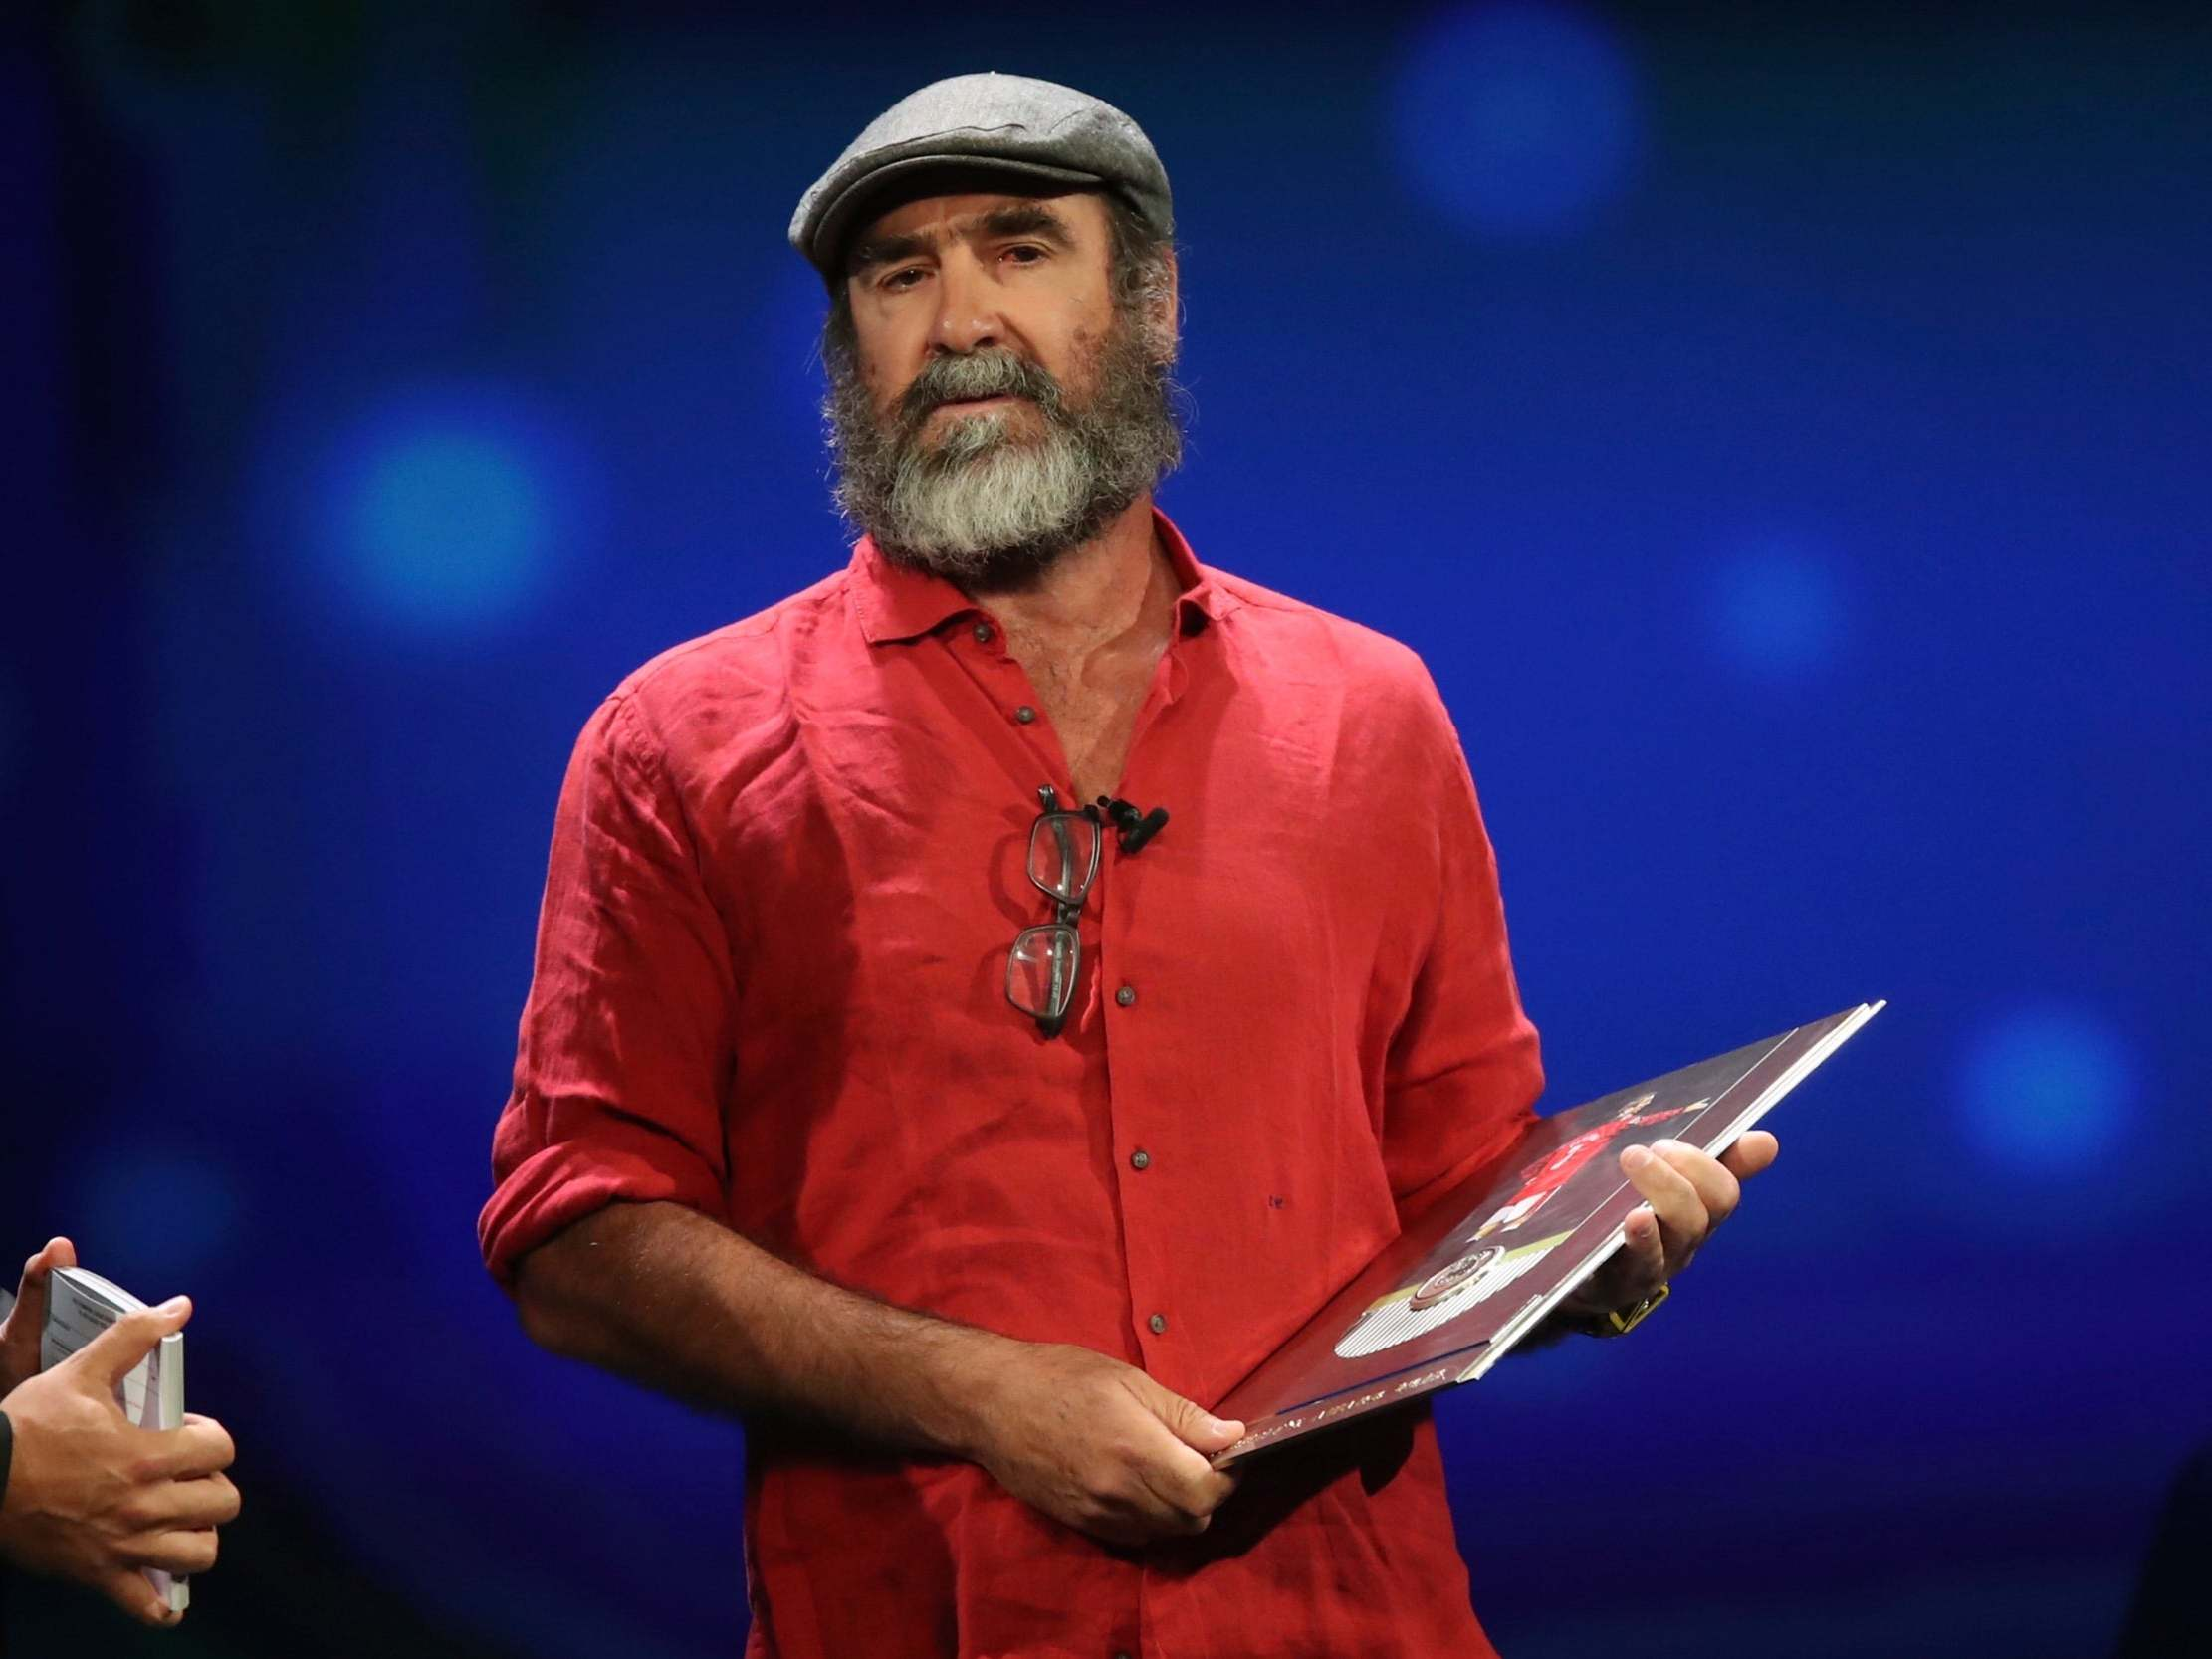 Eric Cantona leaves Champions League draw audience bemused with Shakespeare quote in speech